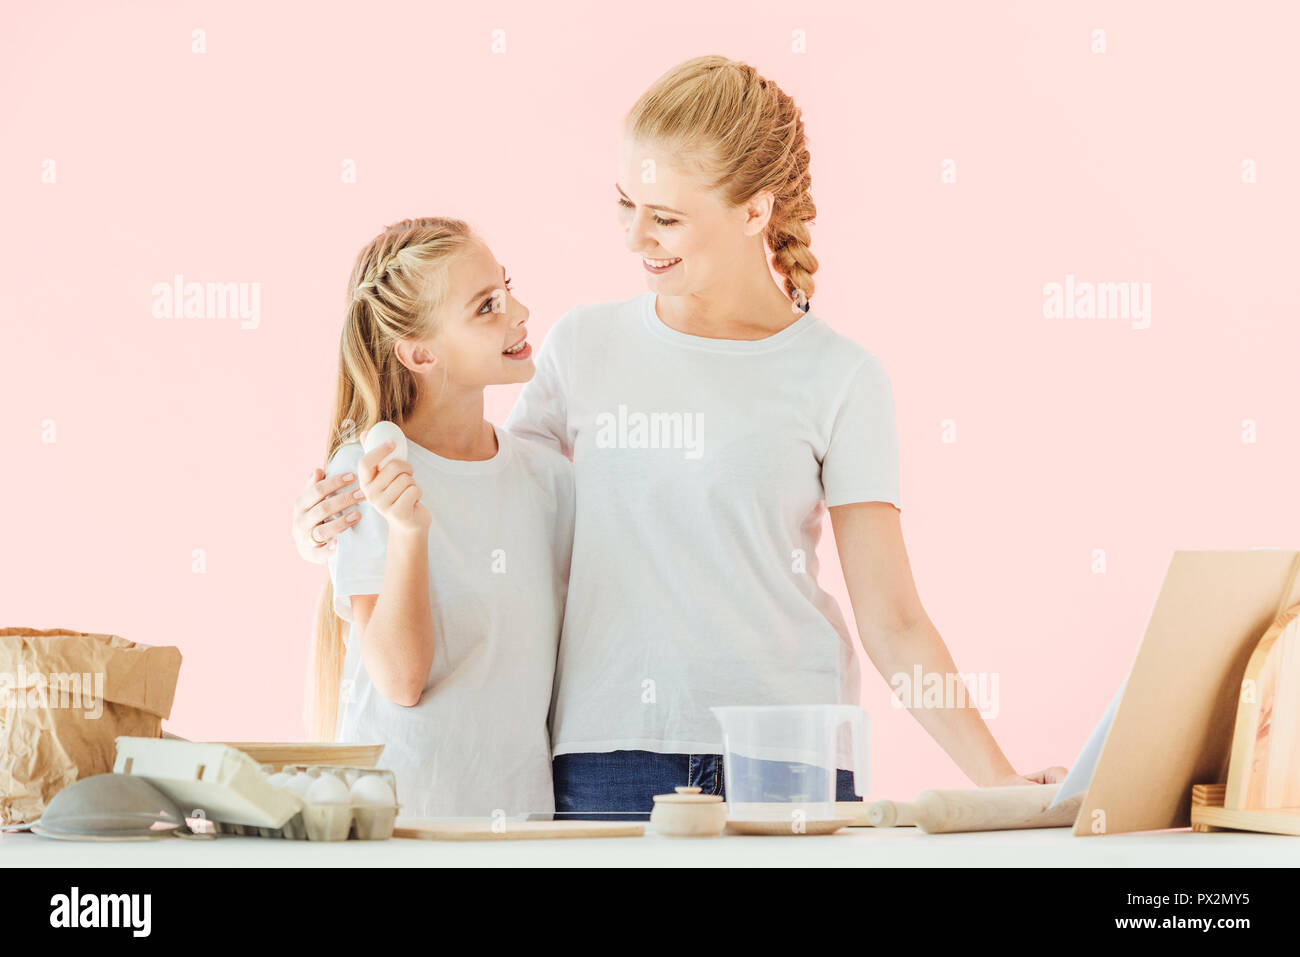 young mother and adorable little daughter in white t-shirts looking at each other during cooking isolated on pink - Stock Image